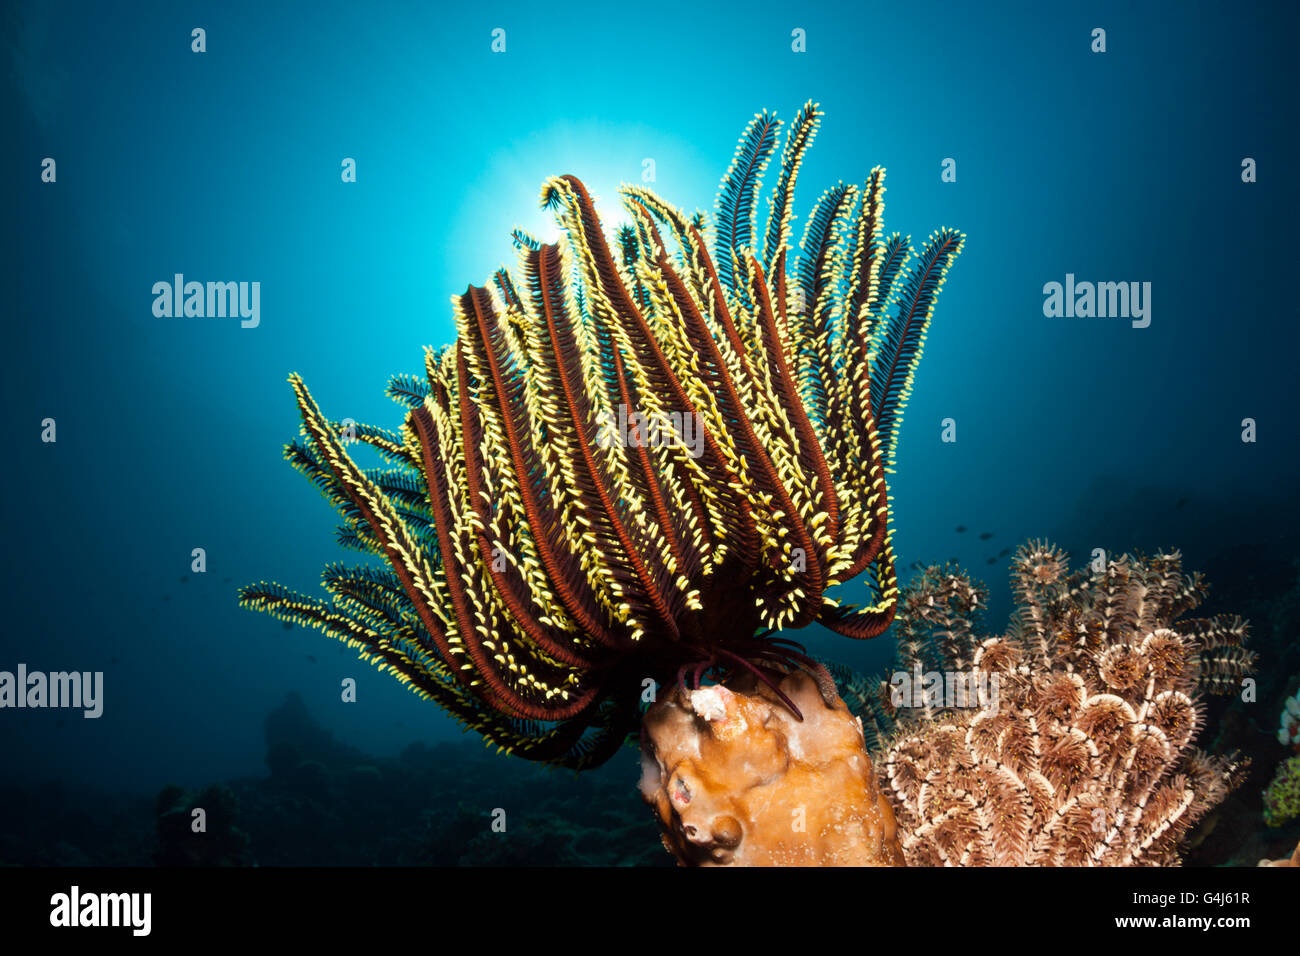 Crinoid in Coral Reef, Oxycomanthus bennetti, Ambon, Moluccas, Indonesia Stock Photo